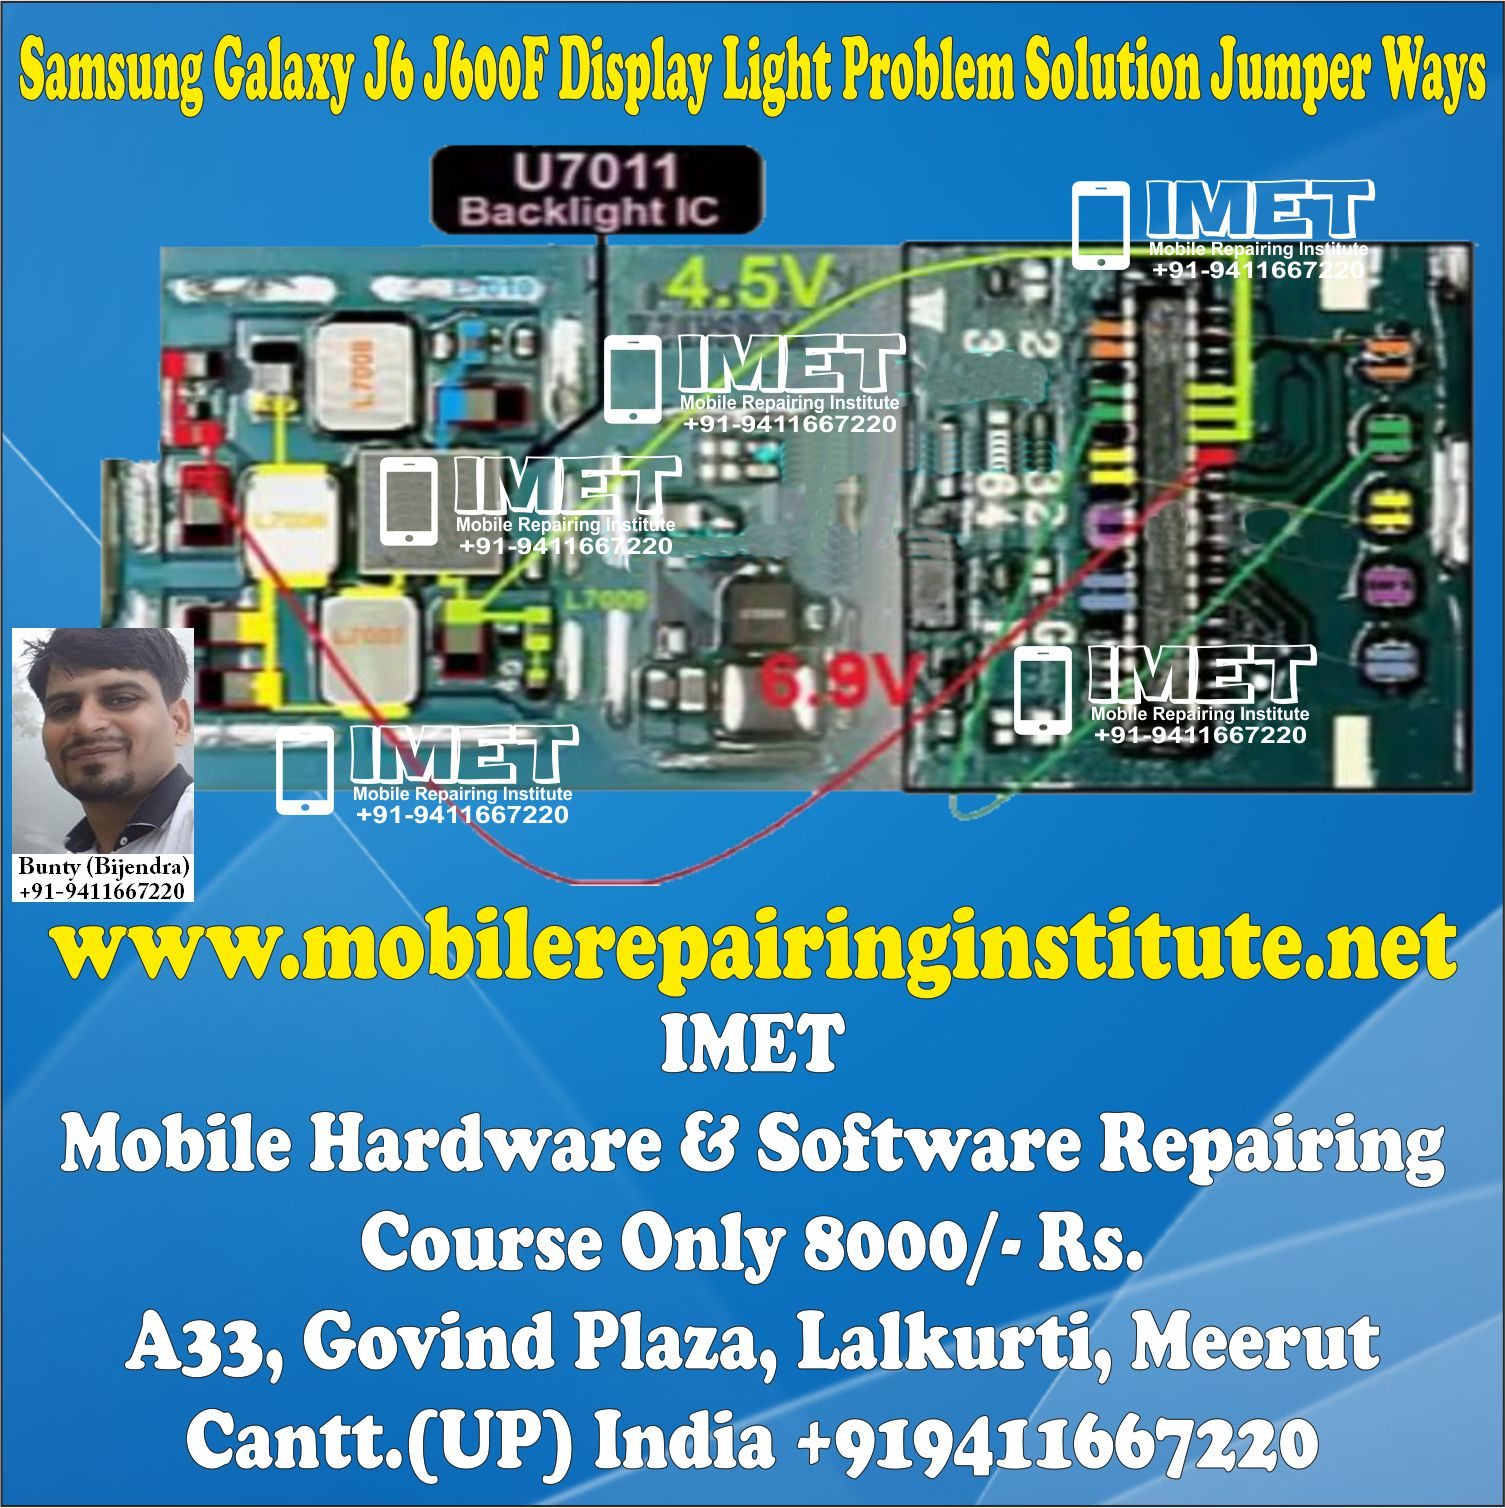 Samsung Galaxy J6 J600F Display Light Problem Solution Jumper Ways